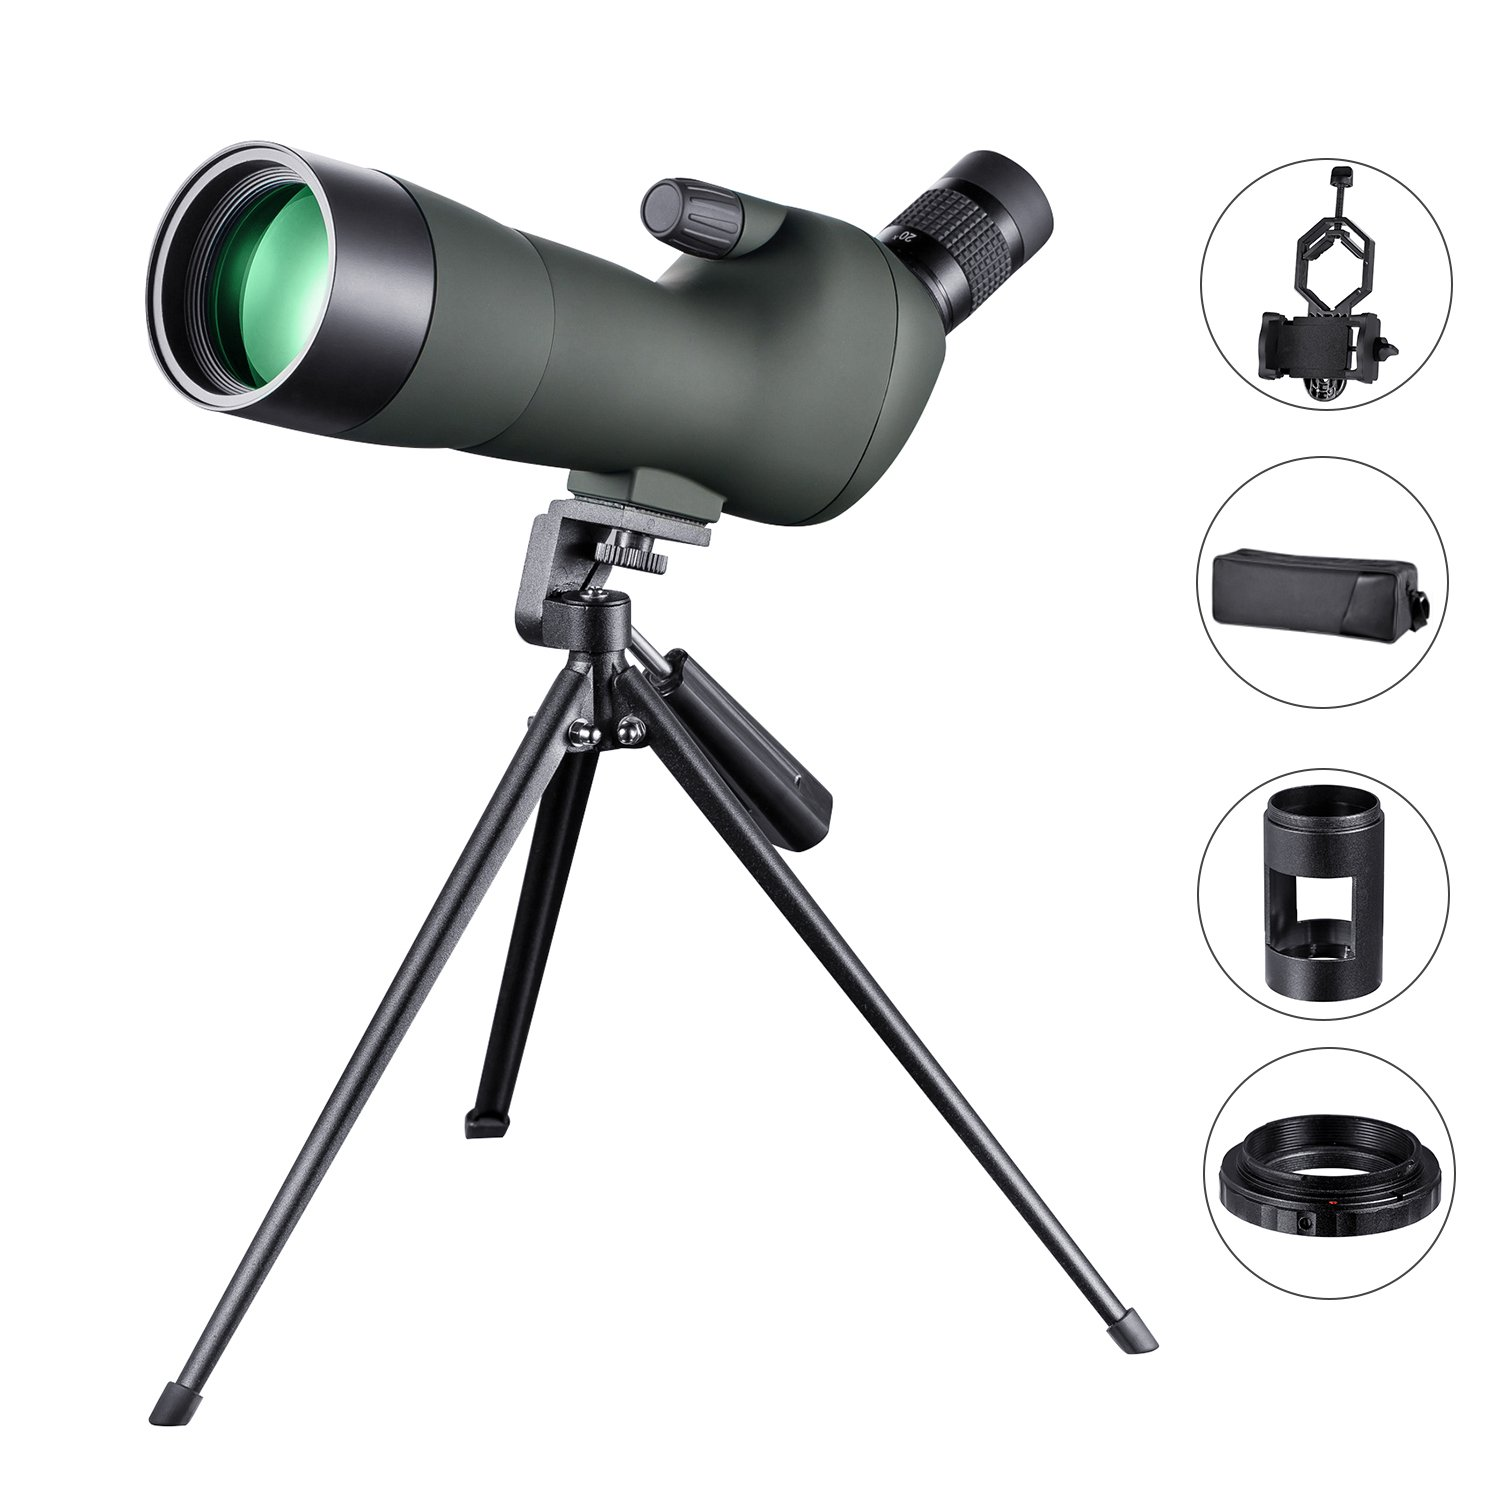 LAKWAR 20-60x60 Spotting Scope for Bird Watching HD Green Film Coated, with Tripod, Phone Adapter, SLR Camera Connector, Suitable for Target Shooting, Camping, and Other Outdoor Activities